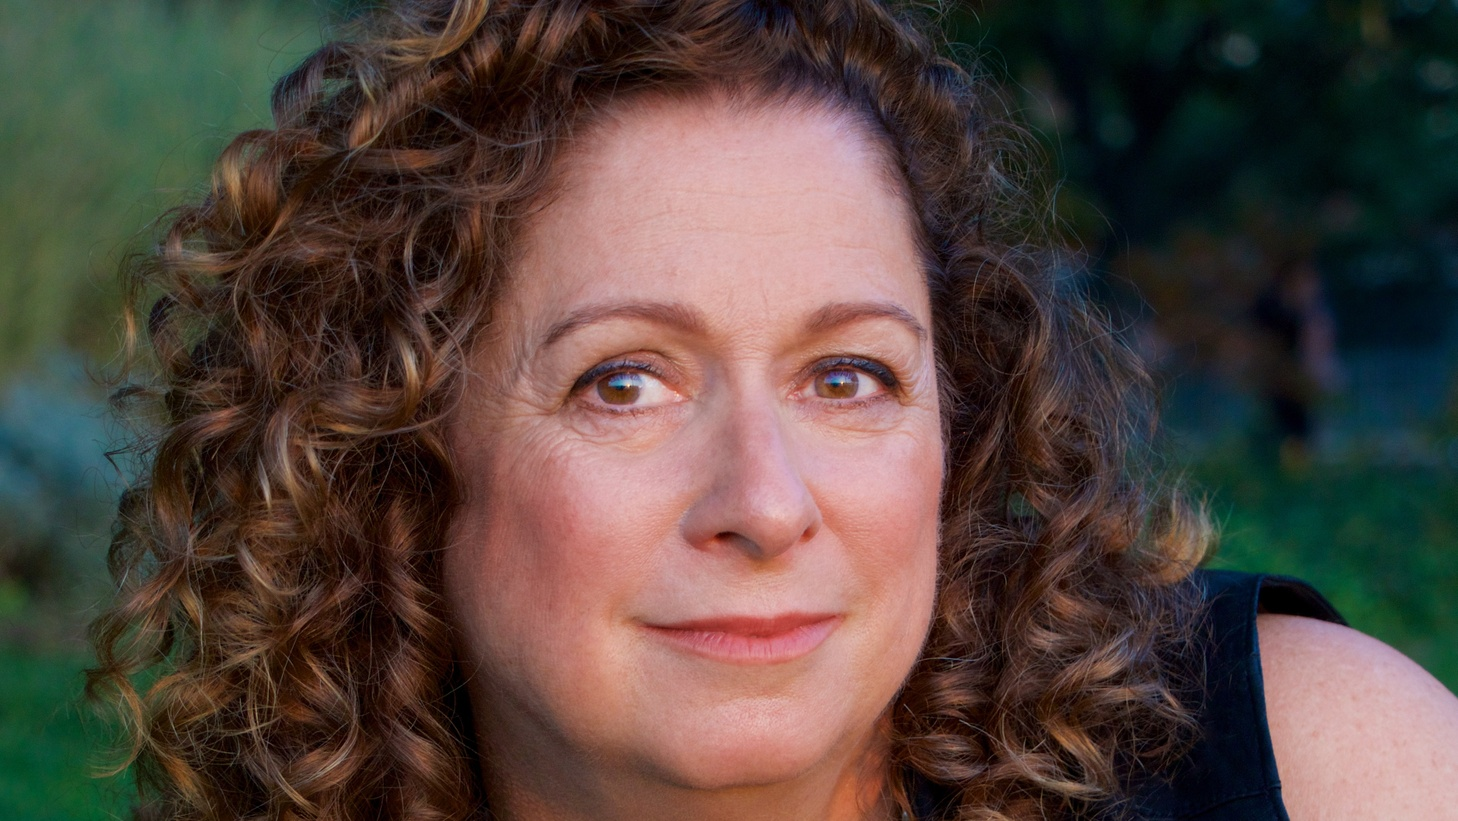 Filmmaker Abigail Disney has a lot to say about current management at the company that bears her name. She thinks if Disney, solid as the brand is, doesn't change its behavior towards low-wage workers, it risks losing everything.